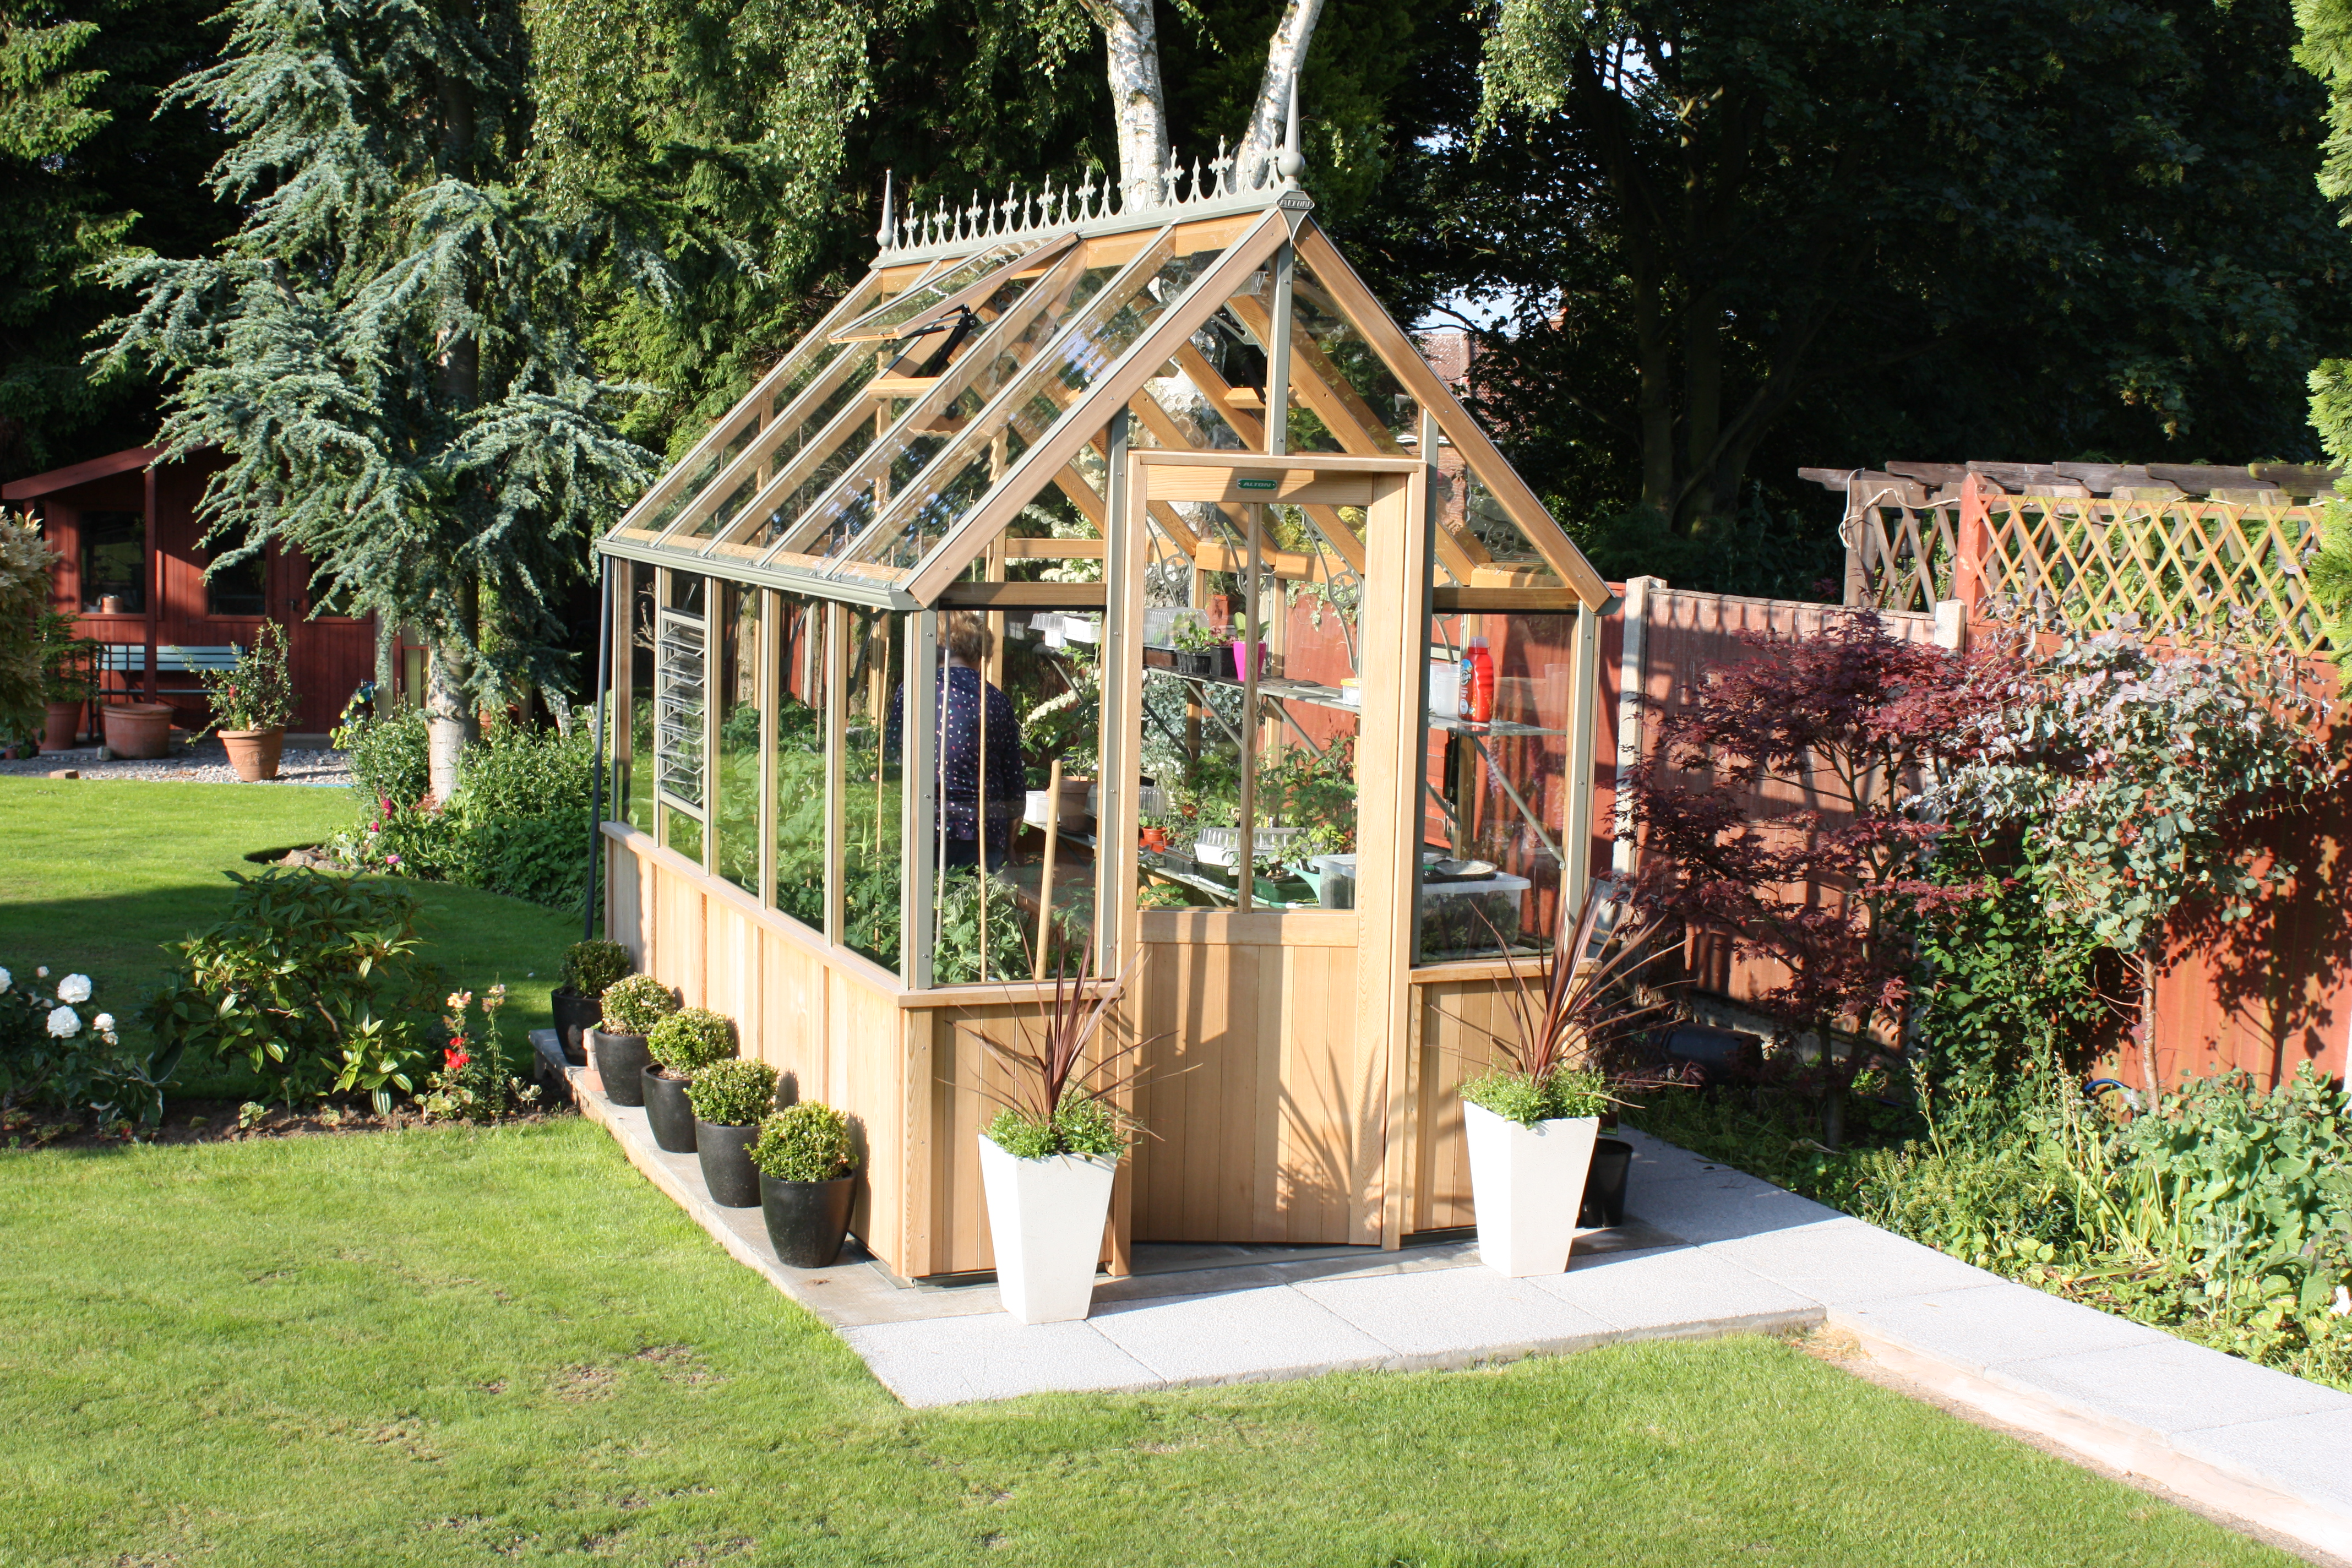 Wooden Greenhouses For Sale Alton Greenhouses Alton